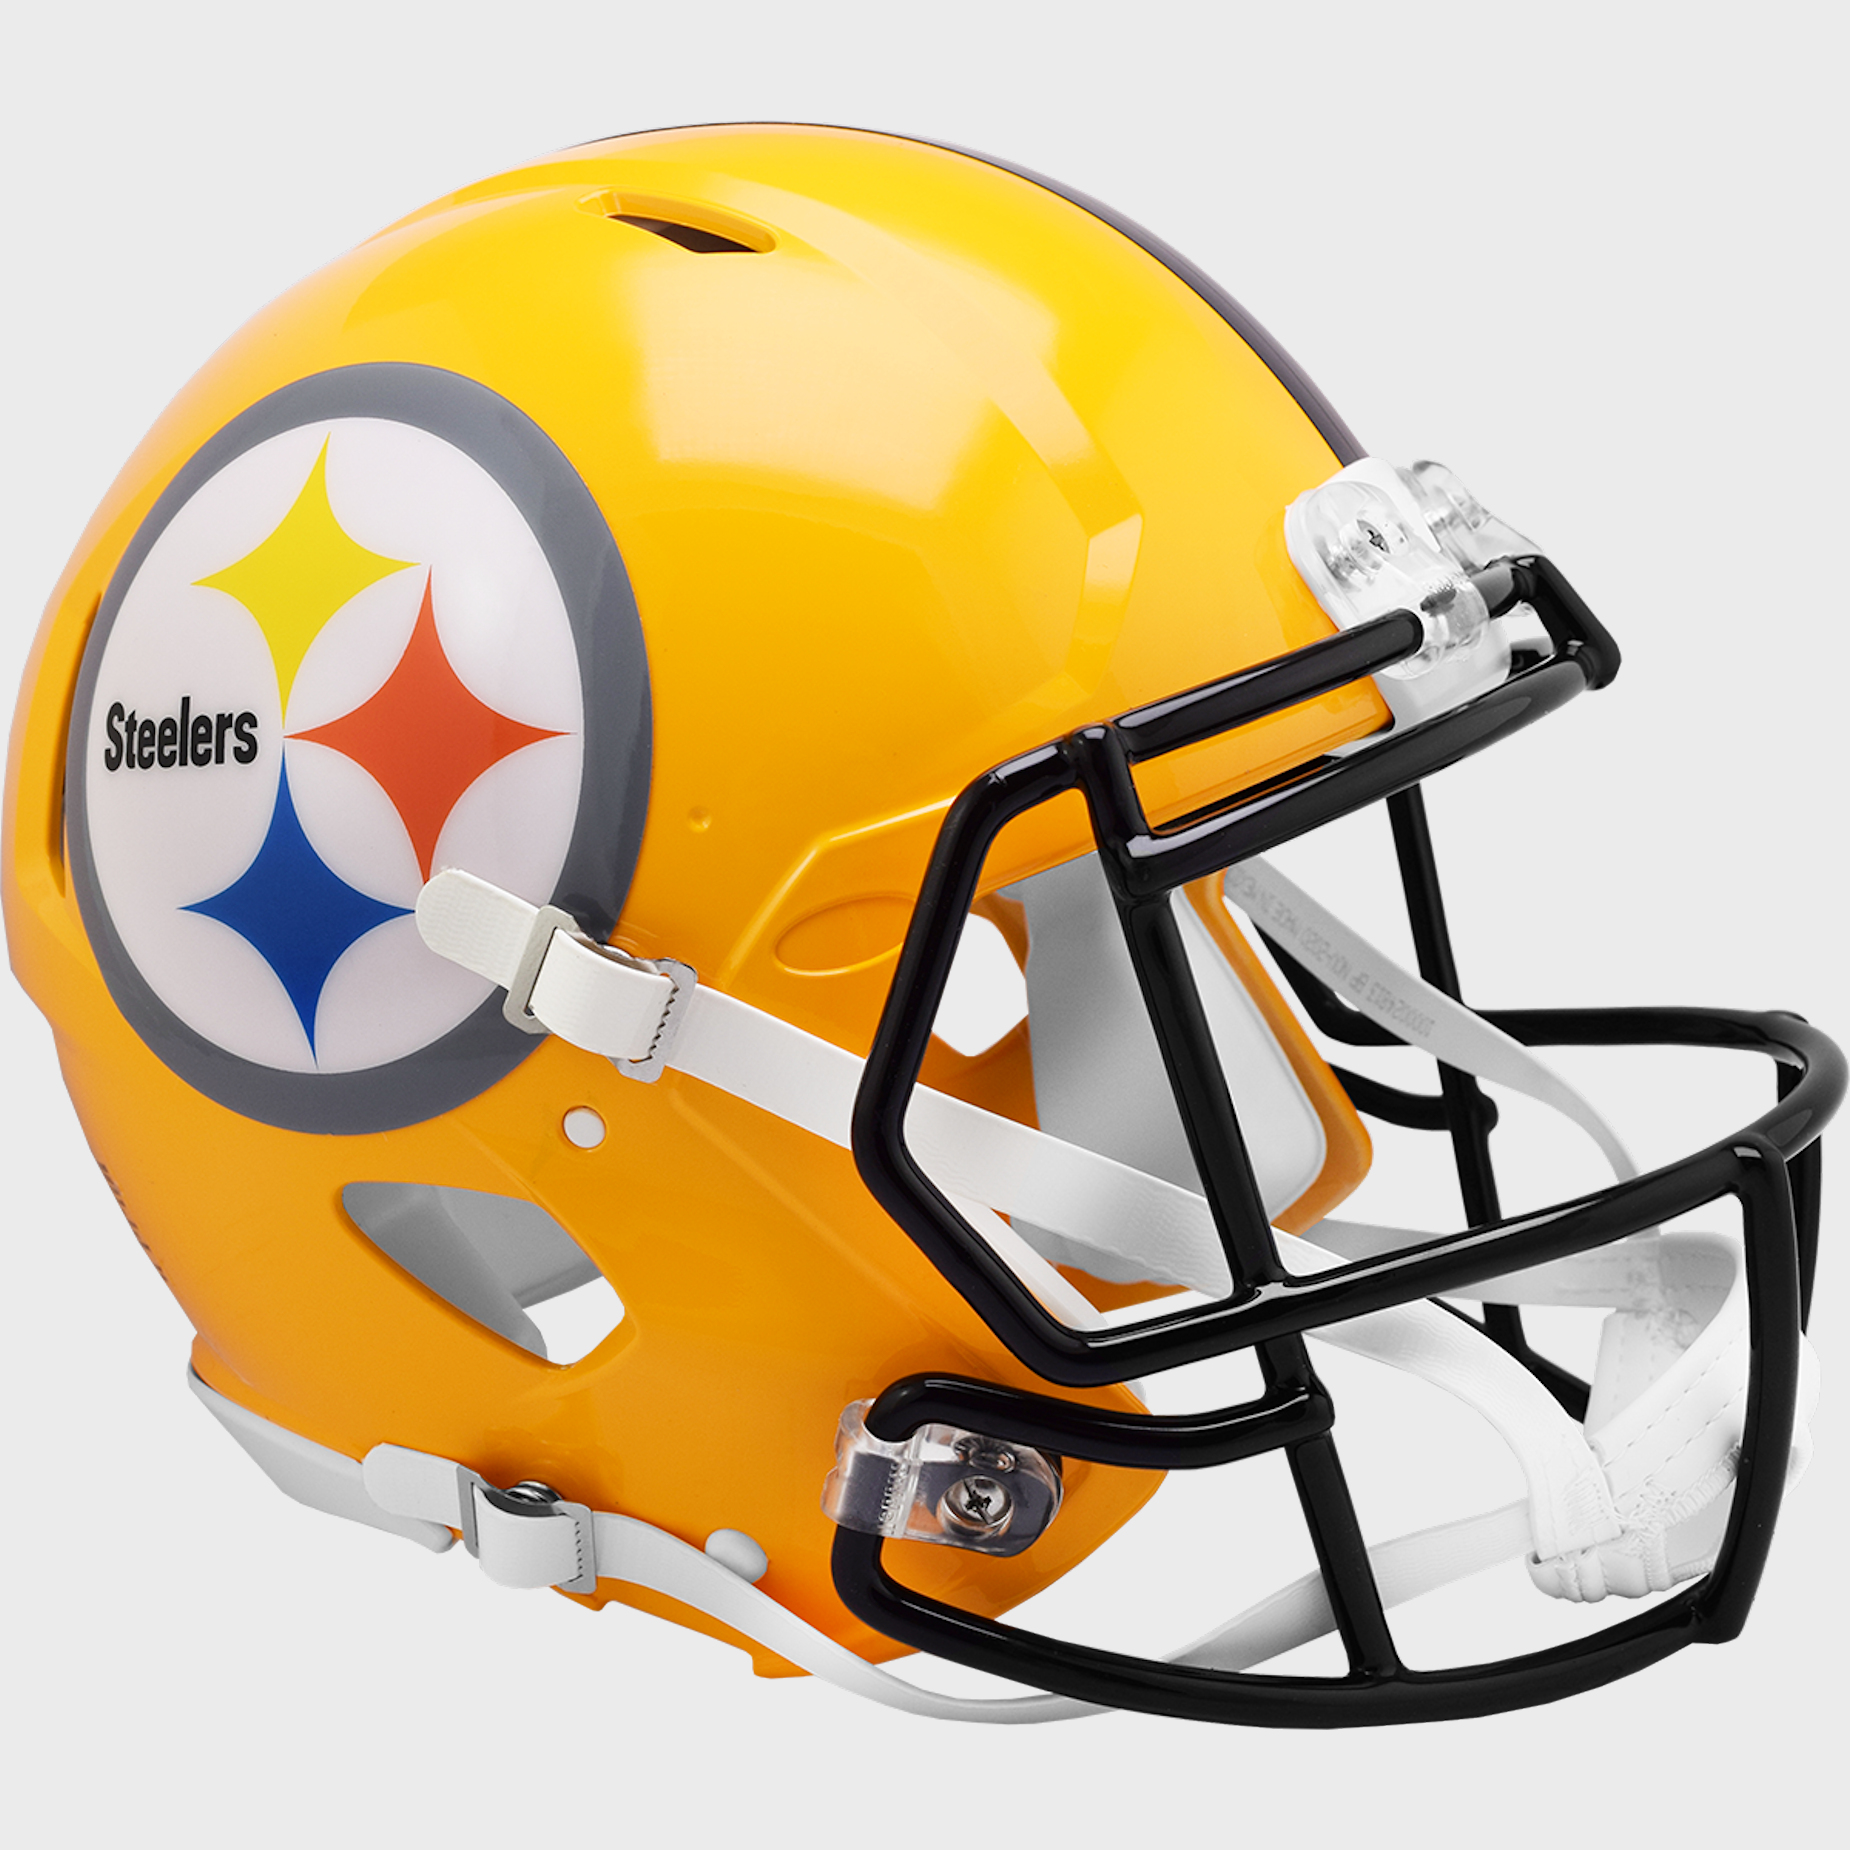 Pittsburgh Steelers Speed Football Helmet Gold